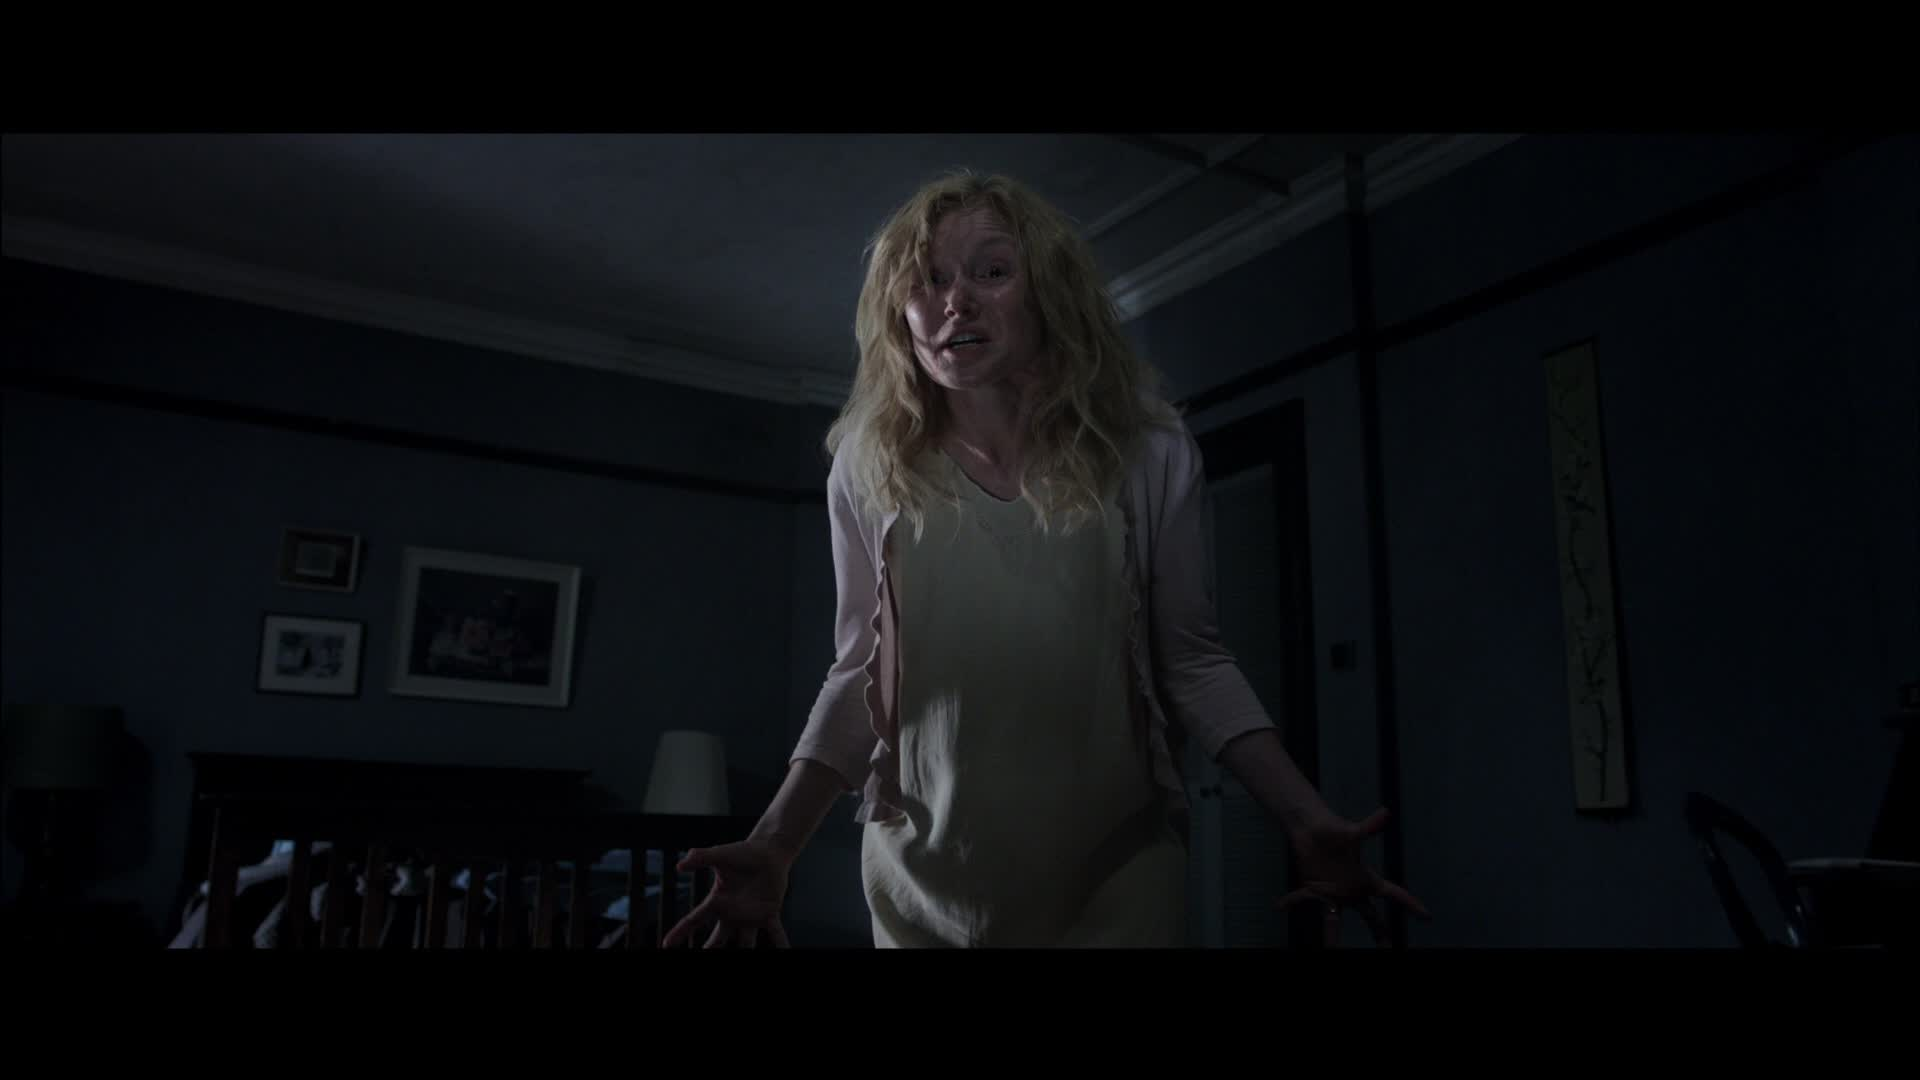 The Babadook (Limited Edition Collector's Edition) (US Blu-ray review)